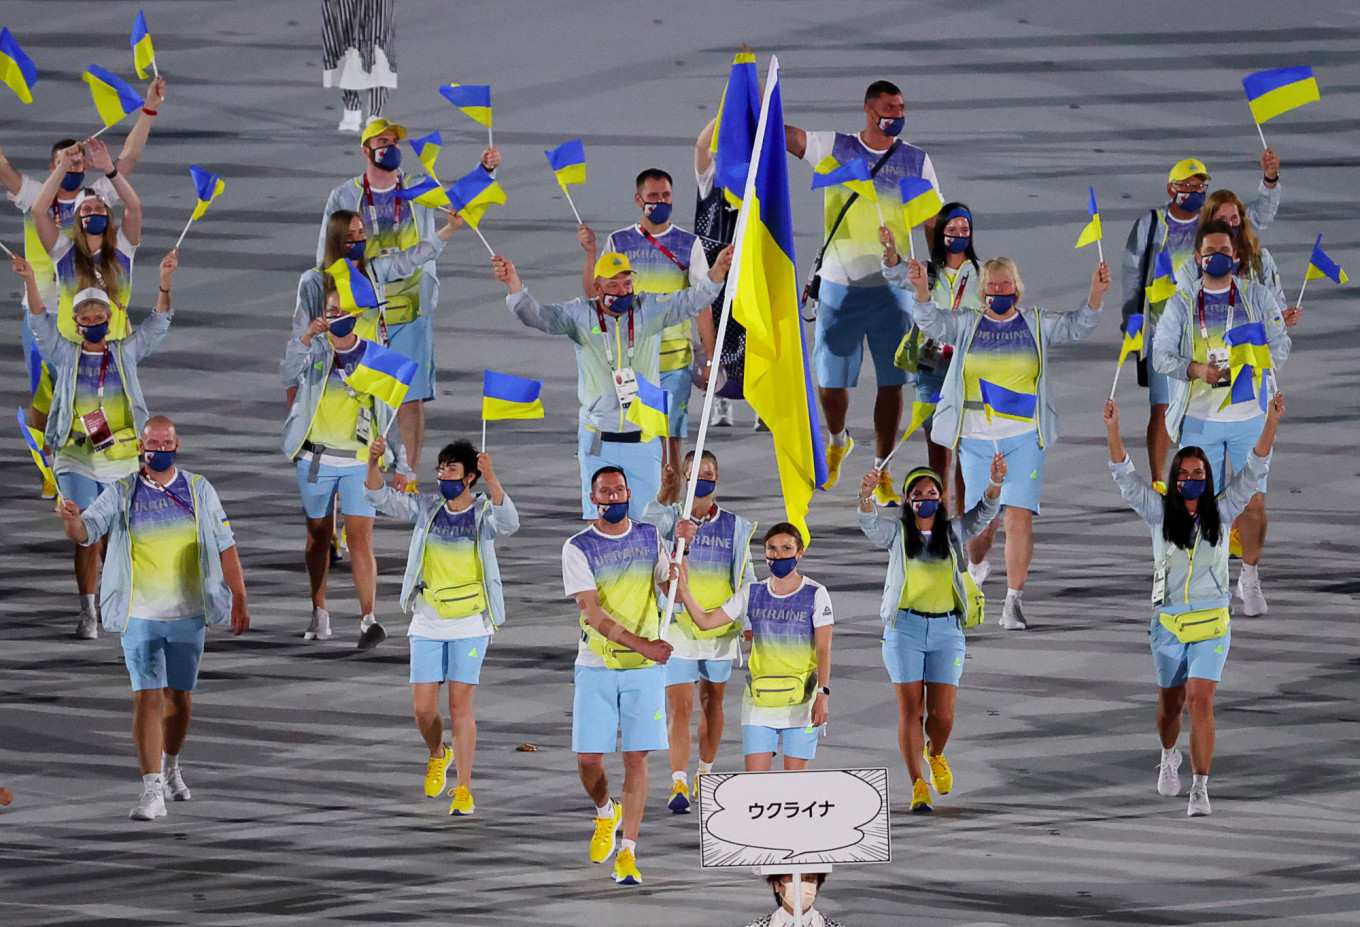 Russian State TV Cuts from Ukraine to Ad in Olympic Opening Ceremony Broadcast